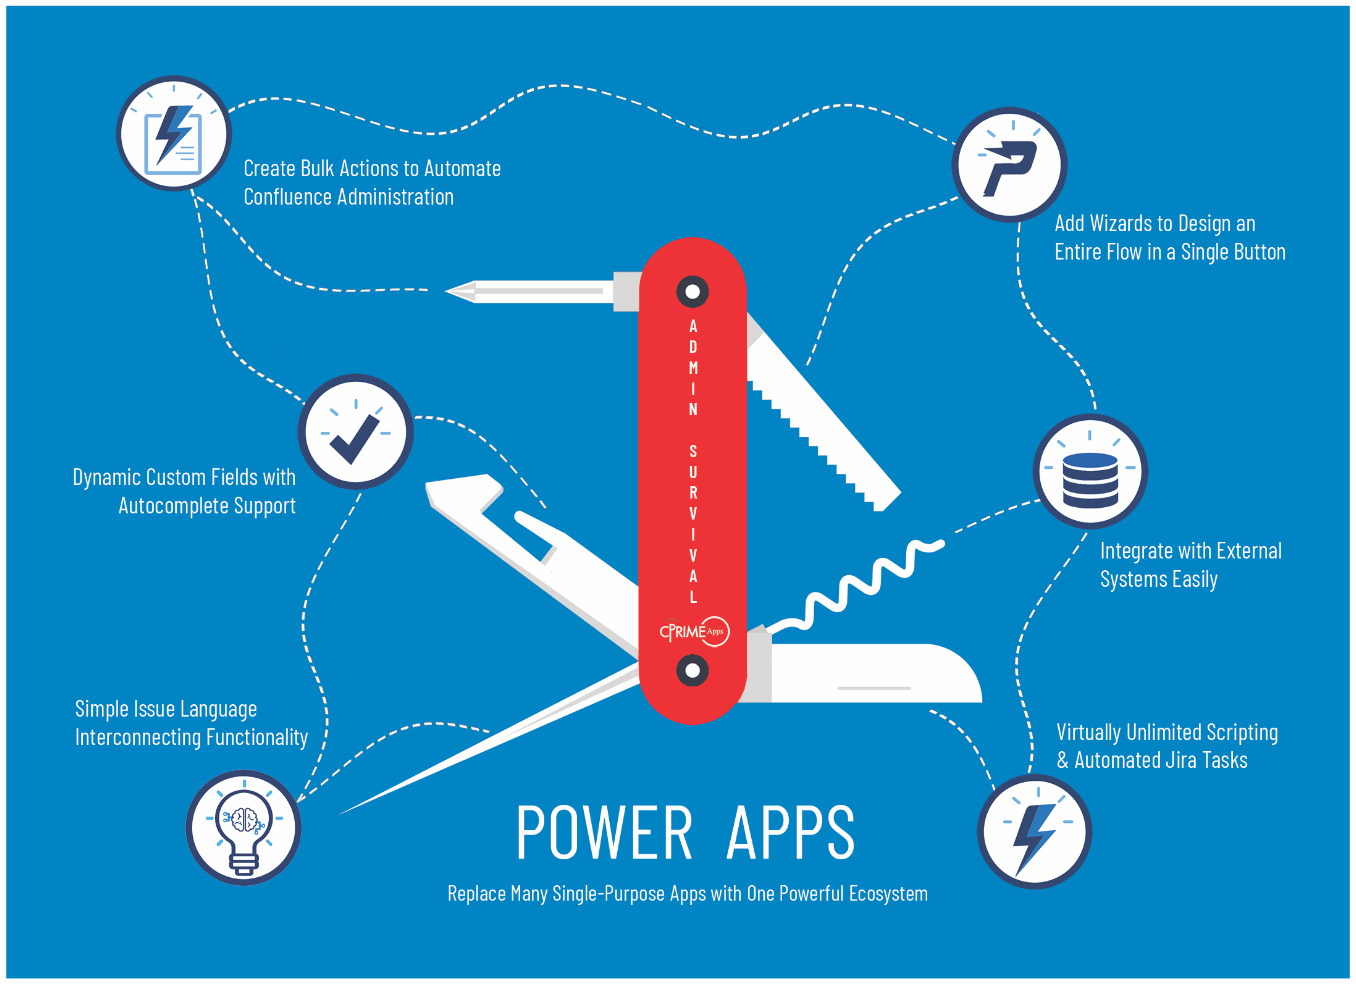 cPrime Power Apps